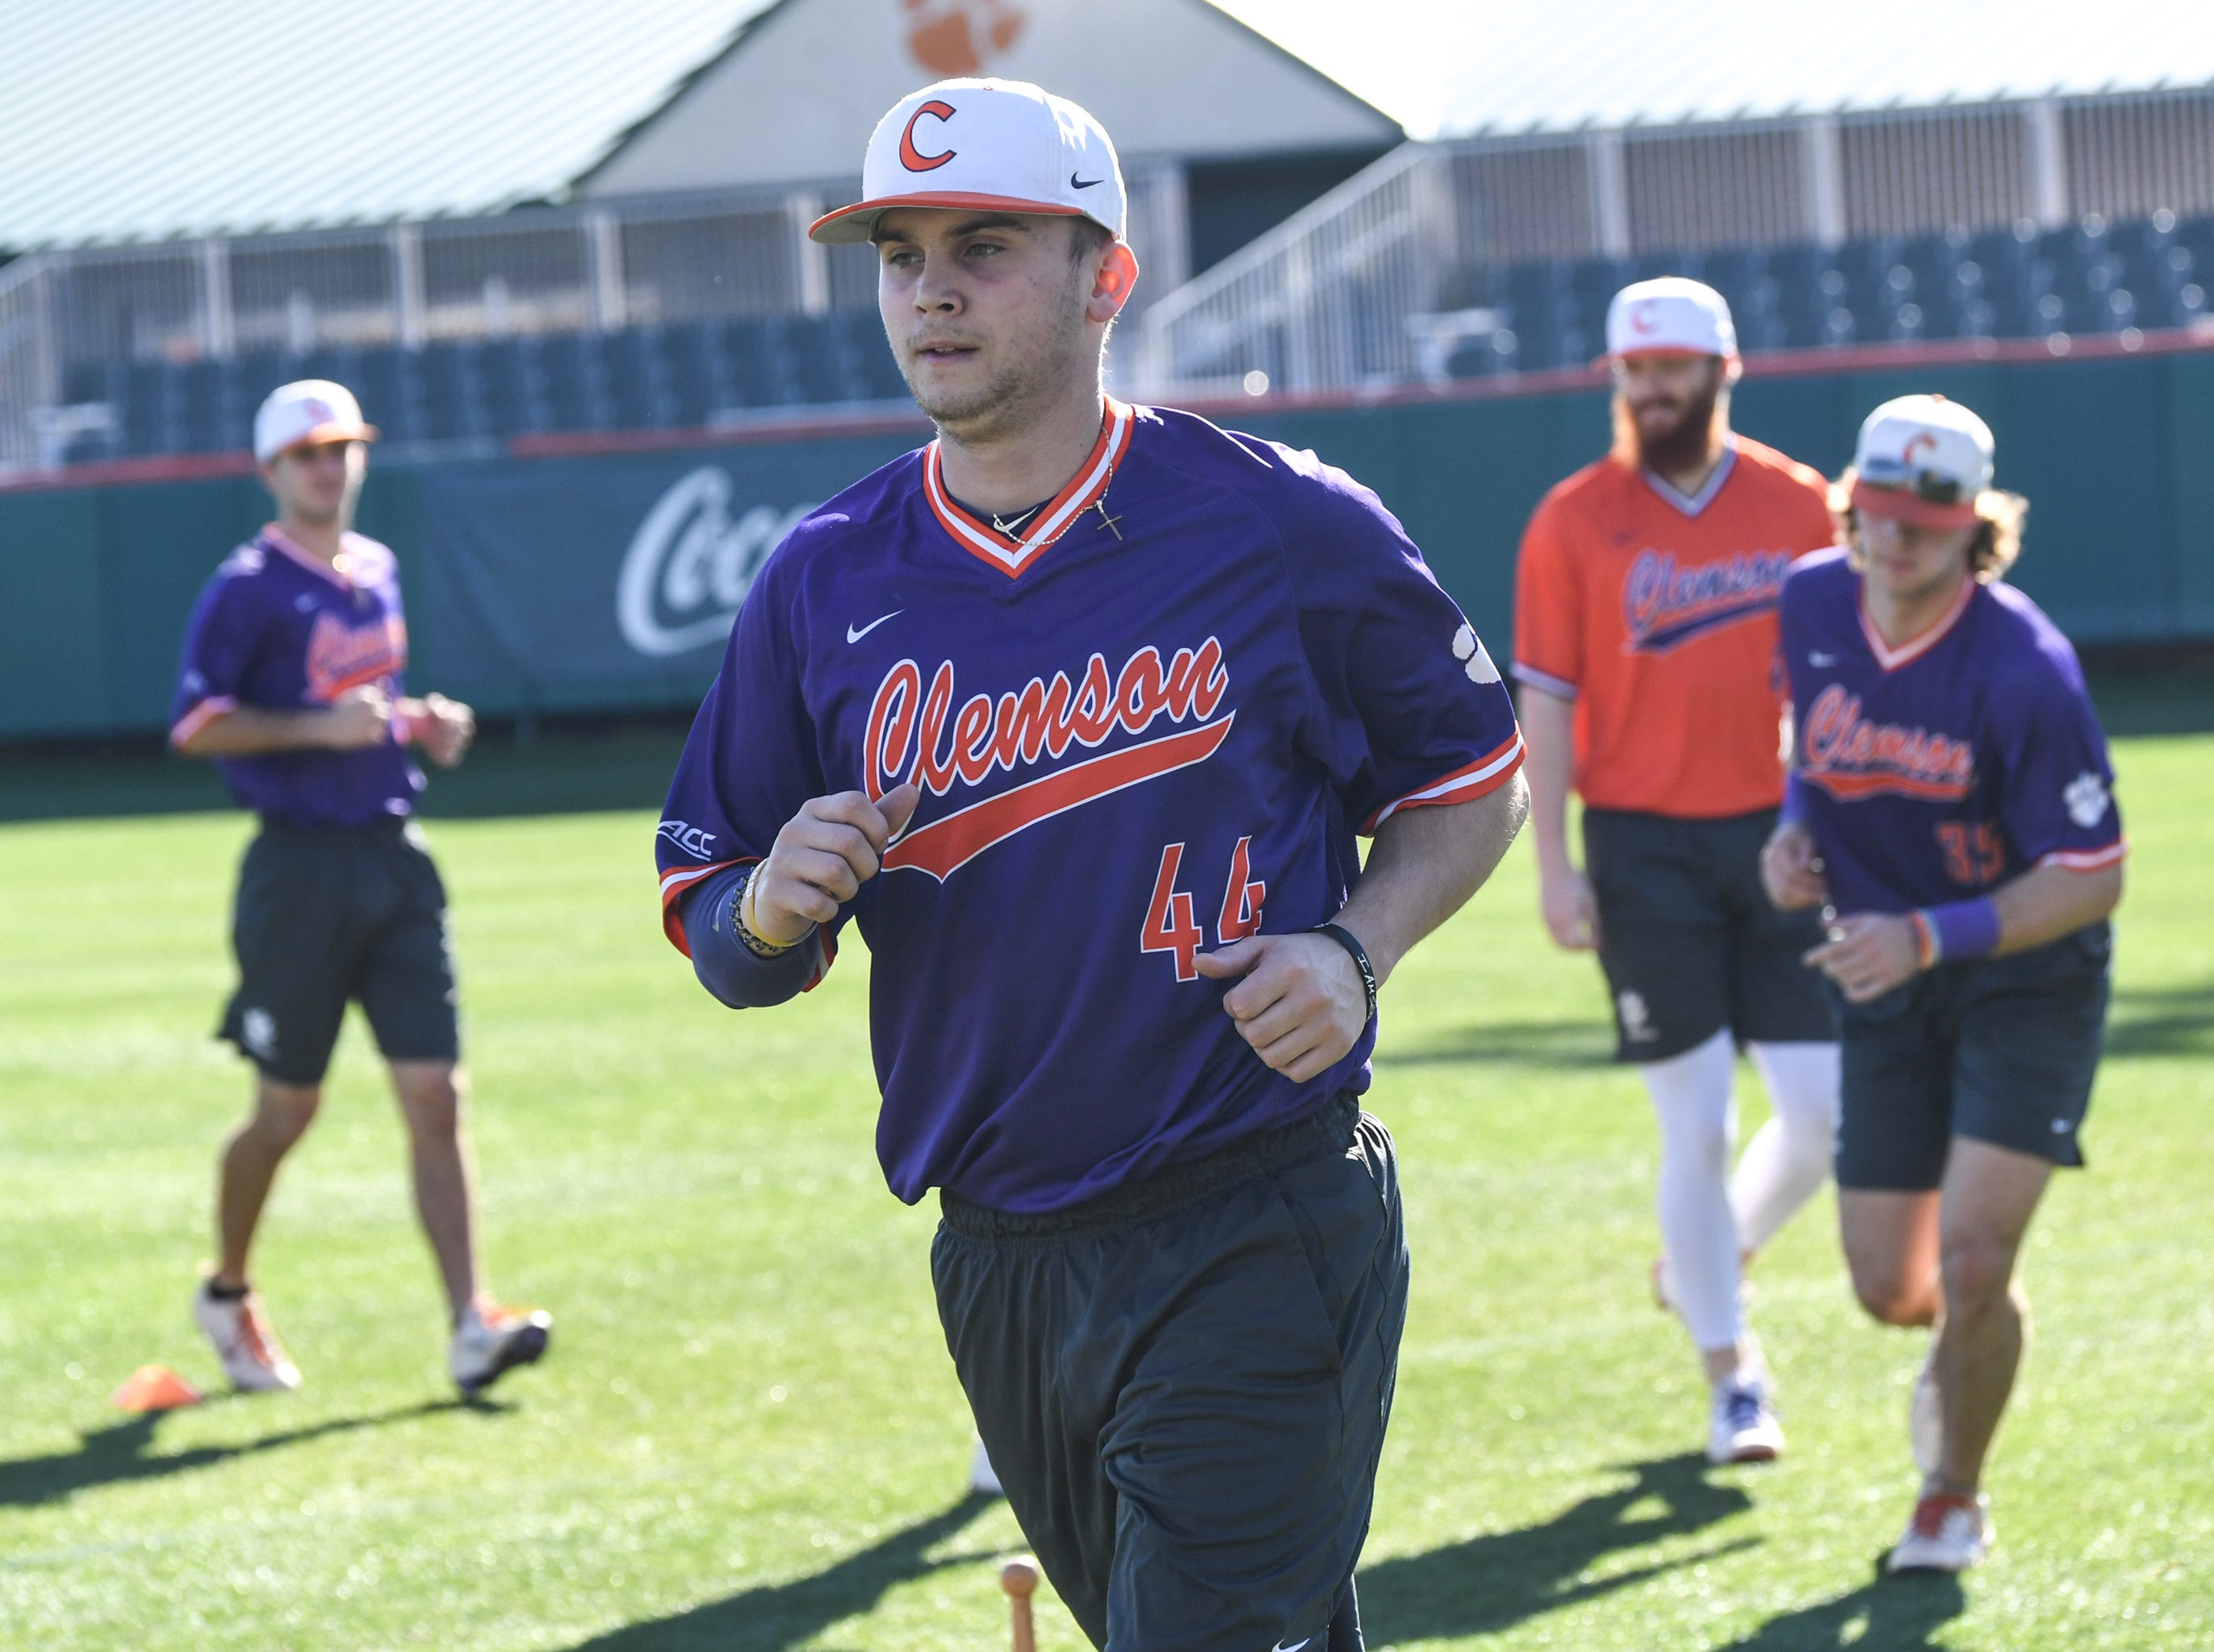 Clemson freshman shortstop Bryar Hawkins jogs during practice at Doug Kingsmore Stadium in Clemson Friday.